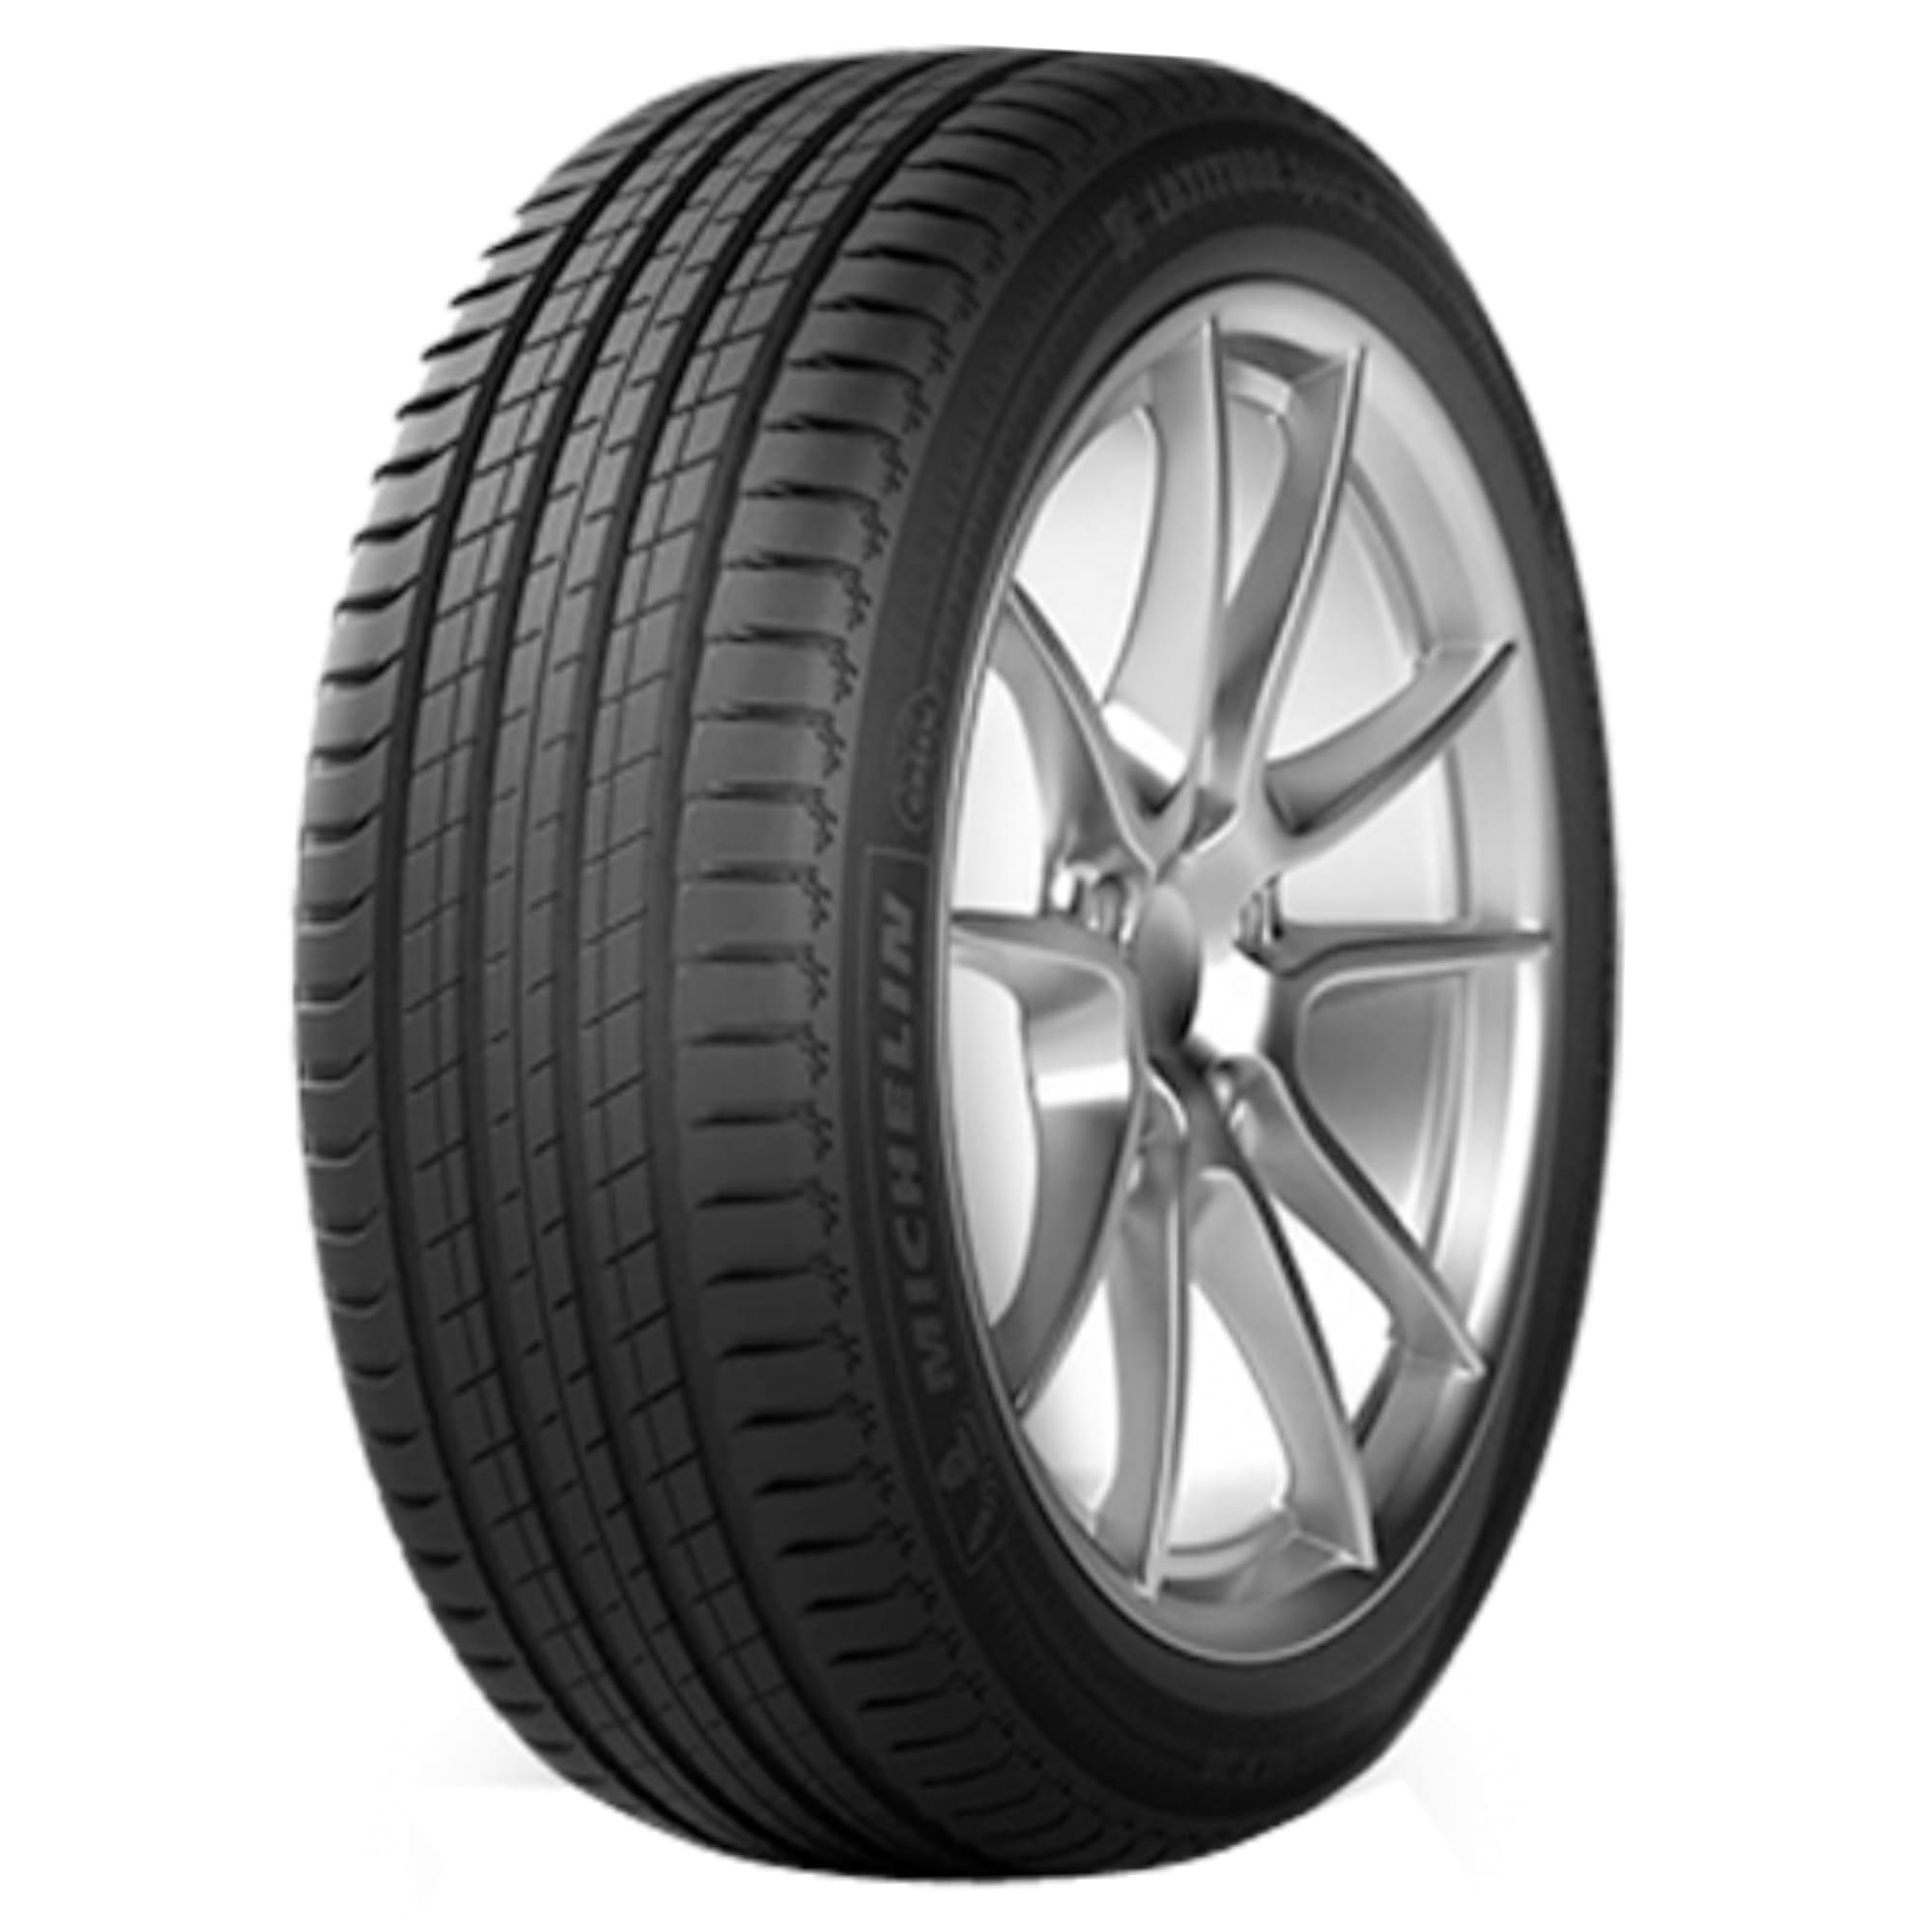 MICHELIN LATITUDE  SPORT 3 295/35 R21 103Y Mini Foto 1